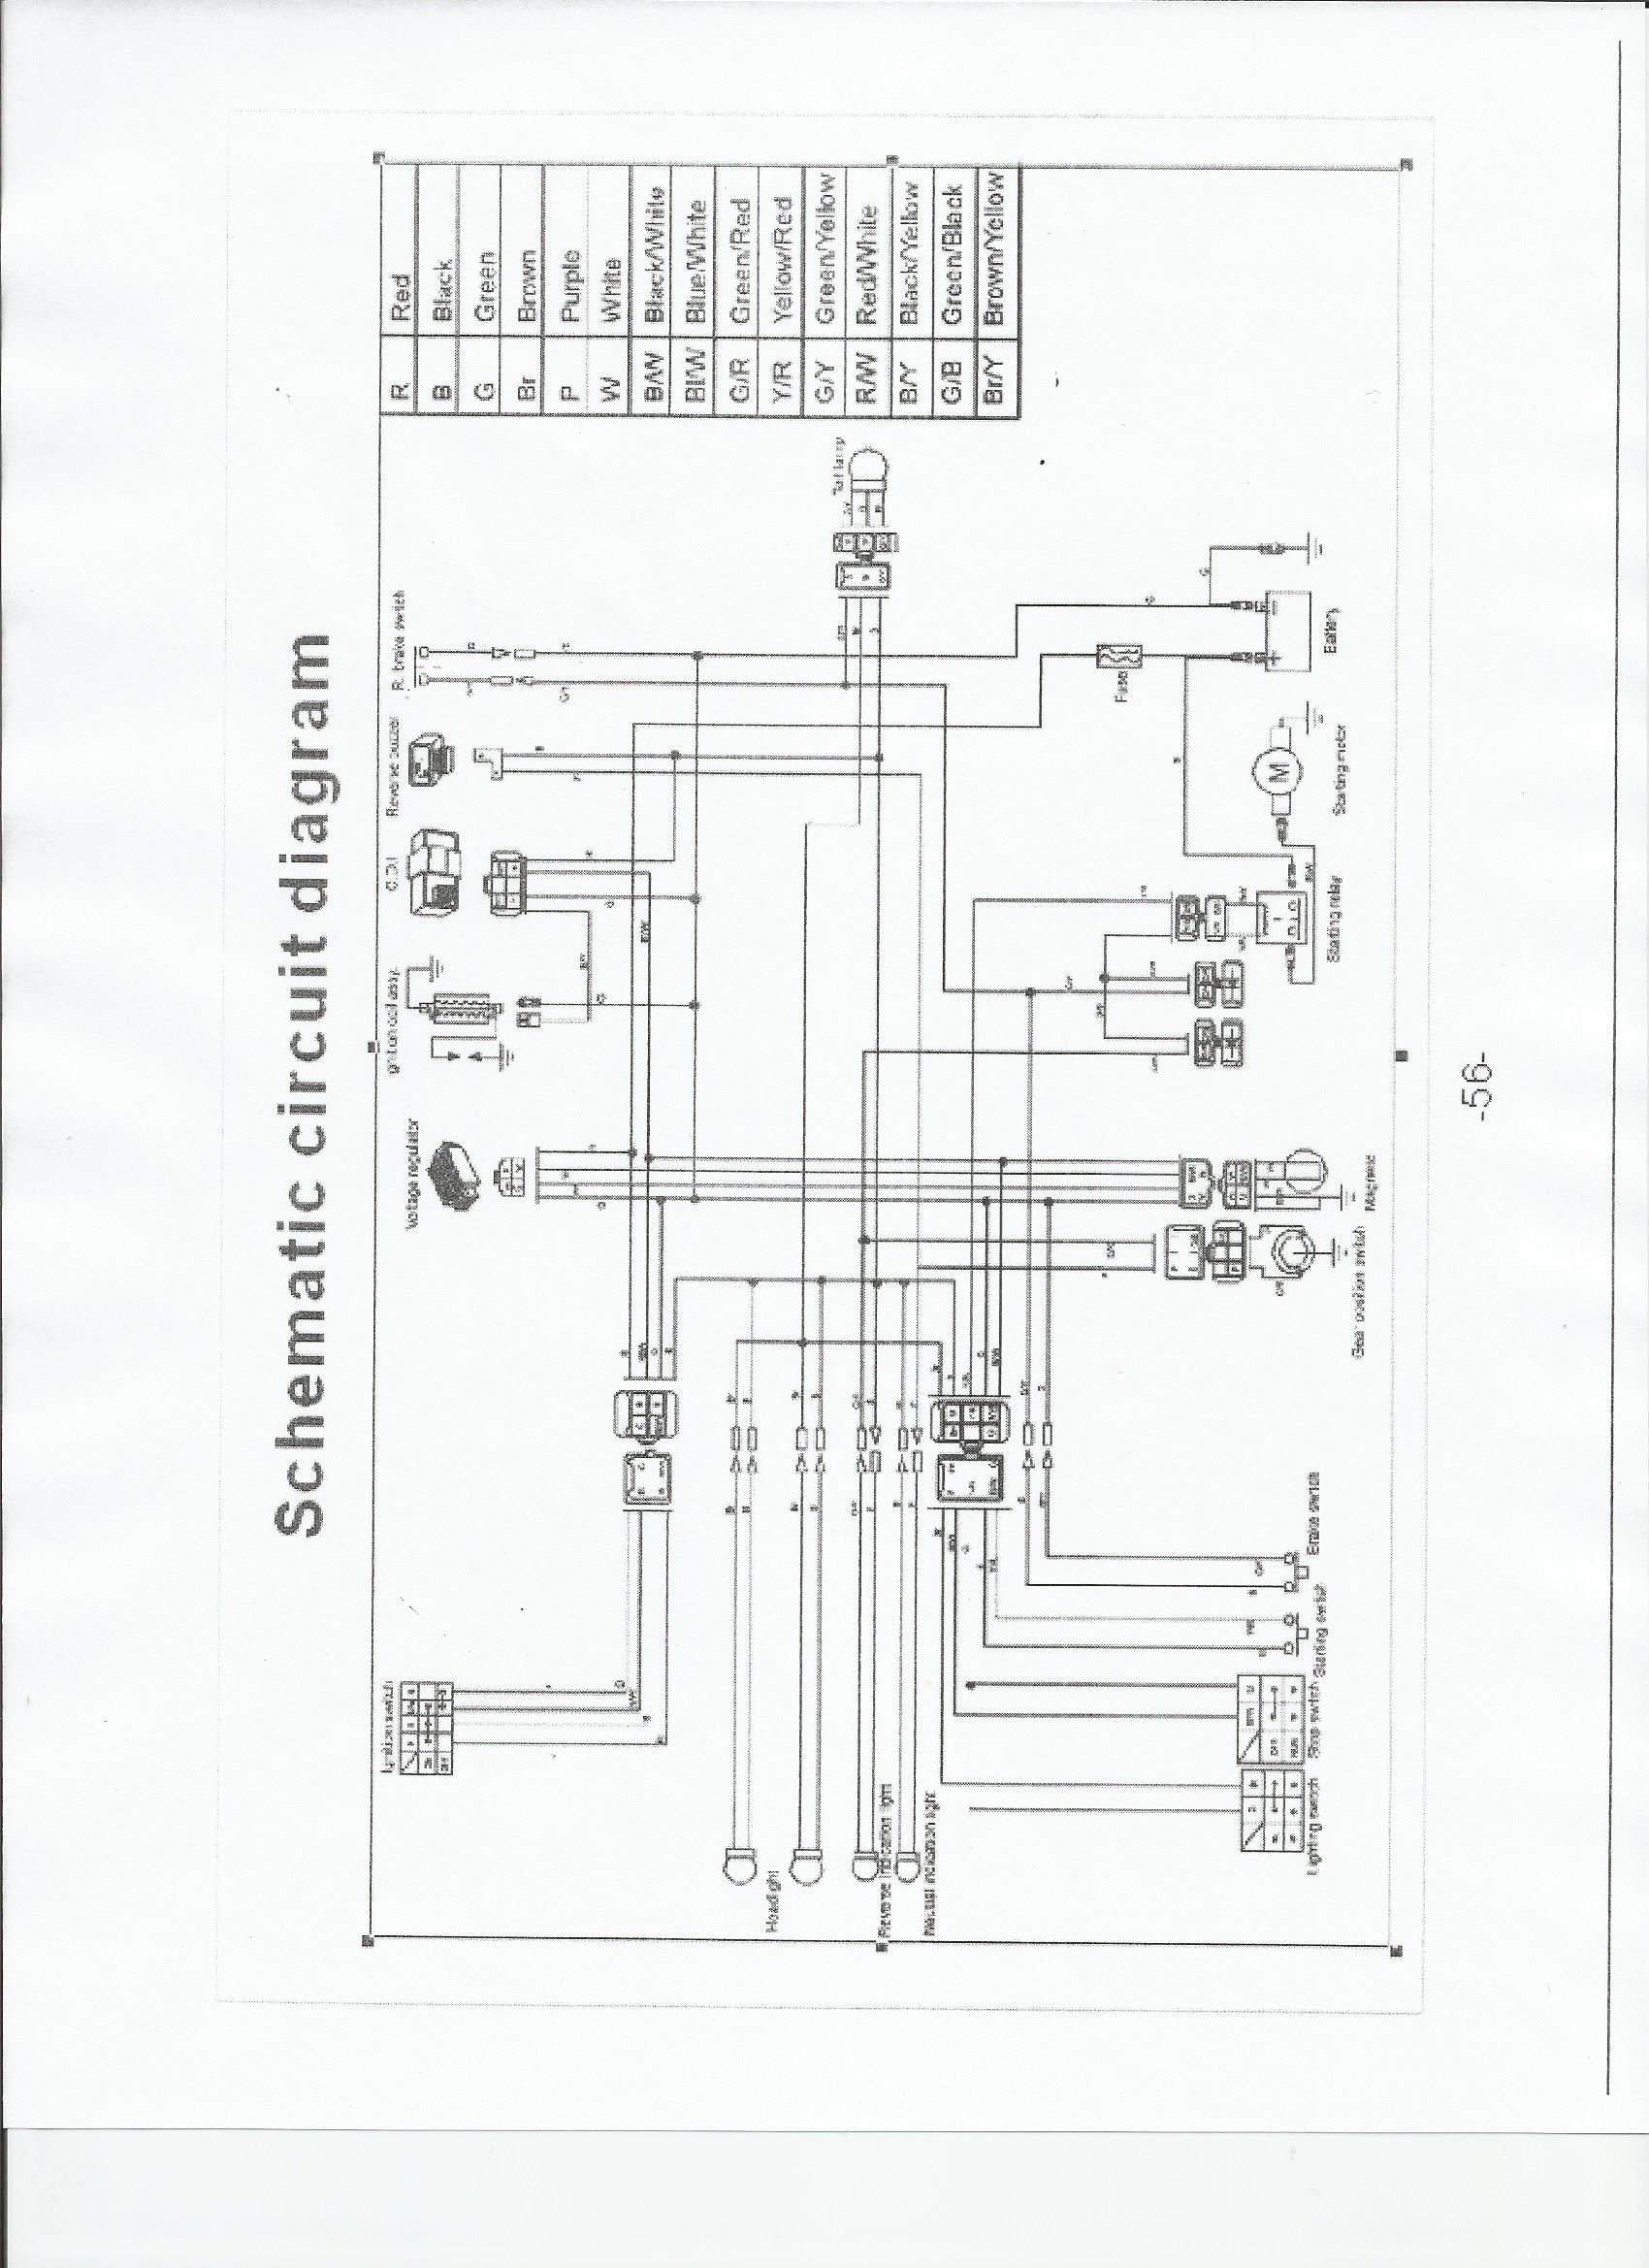 tao tao wiring schematic taotao mini and youth atv wiring schematic familygokarts support Simple Wiring Schematics at bakdesigns.co